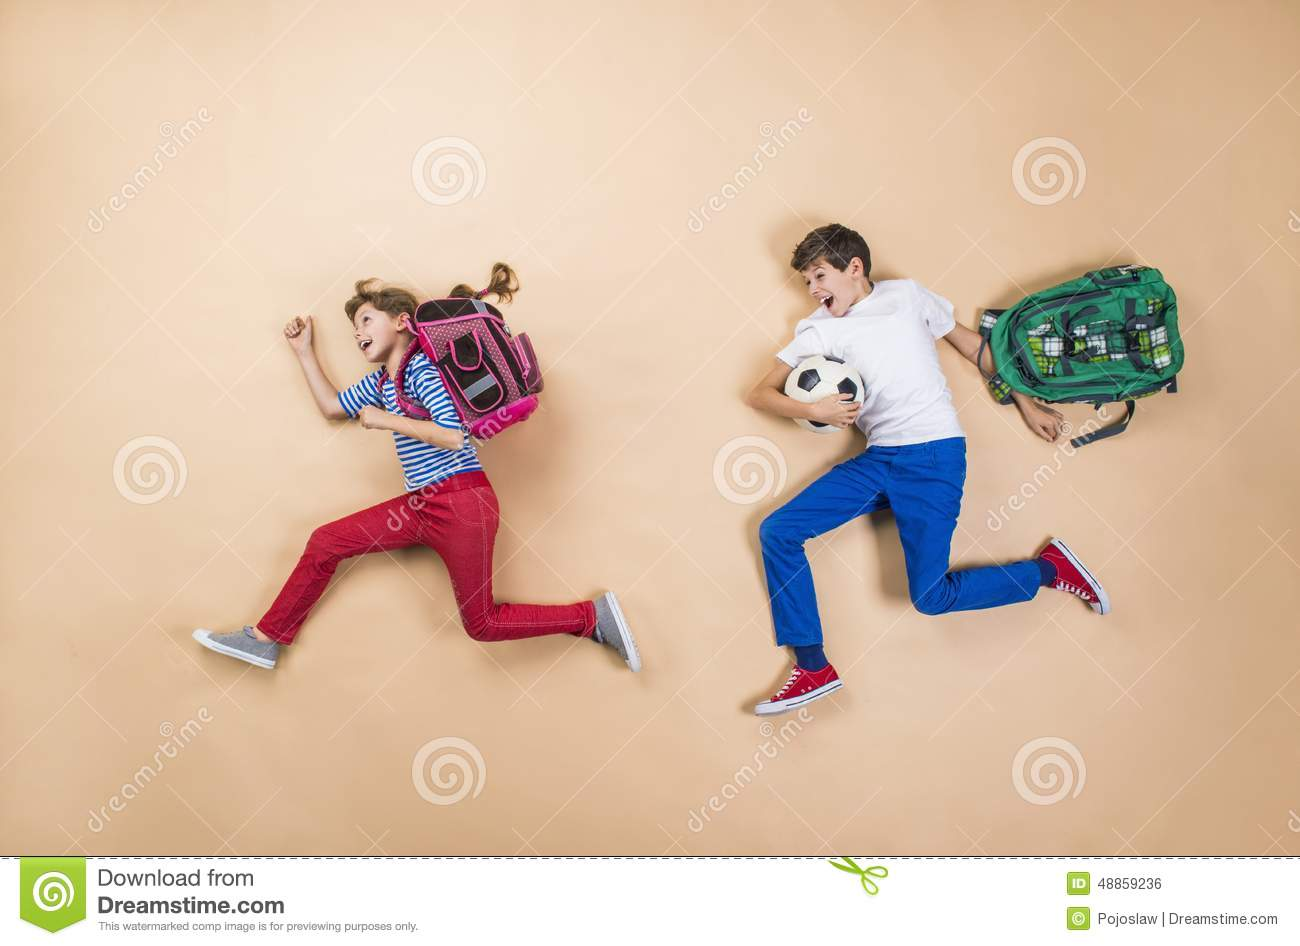 children running in school - photo #30